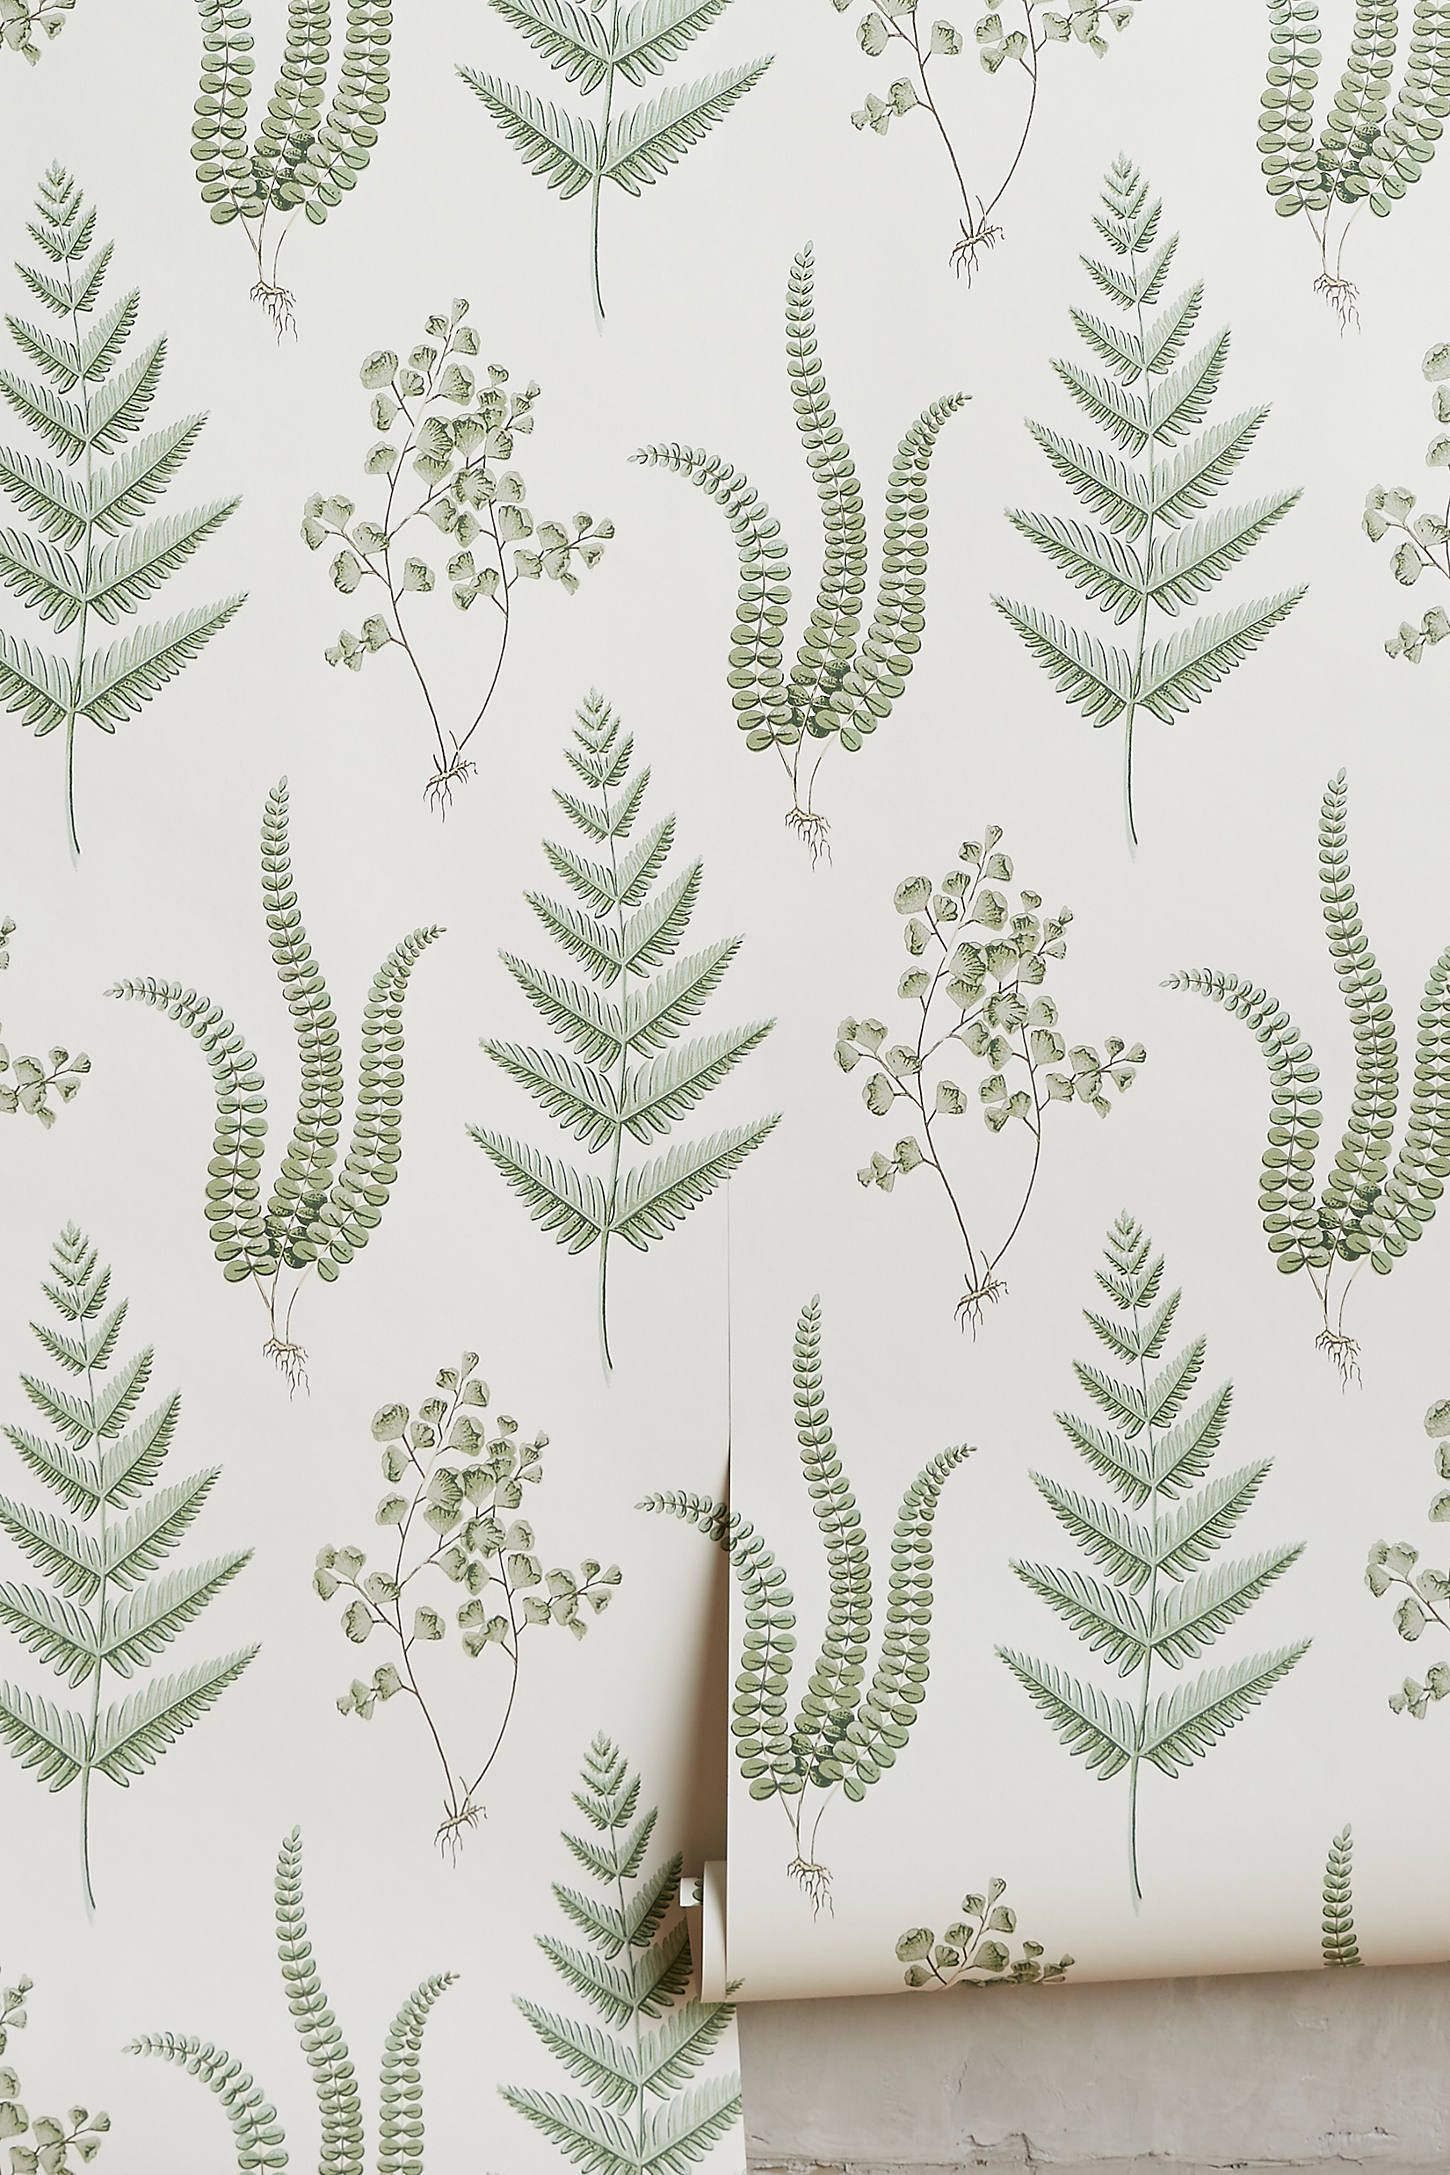 Herbal Wallpaper by Boråstapeter in Green, Wall Decor at